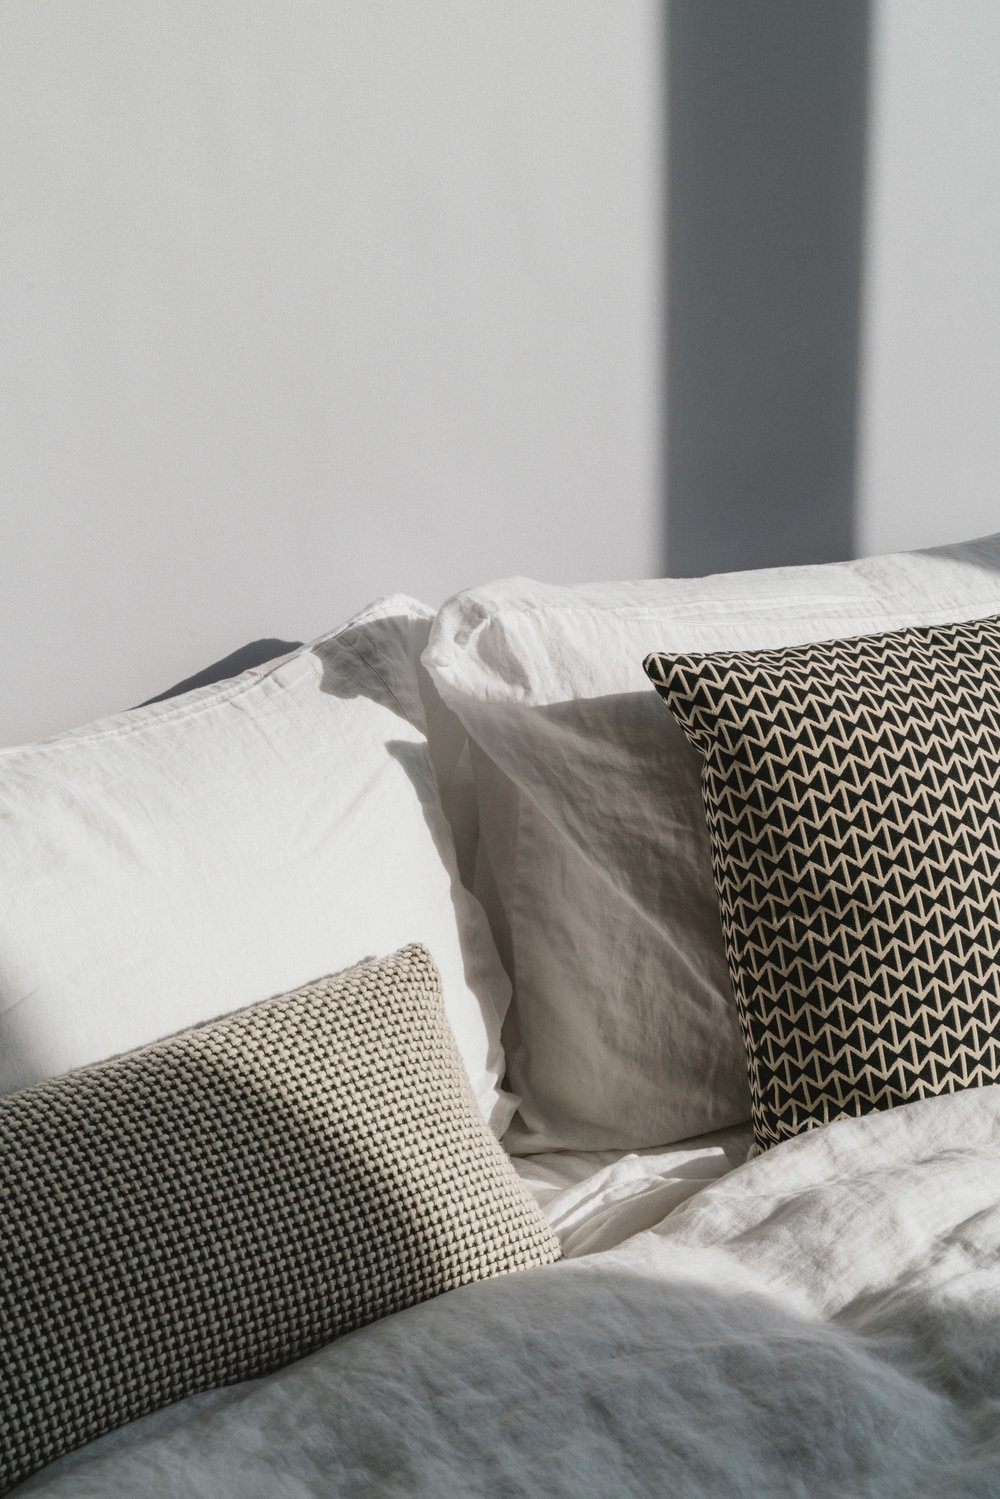 Linen Sheets from Design Within Reach ,  Herman Miller Pillows